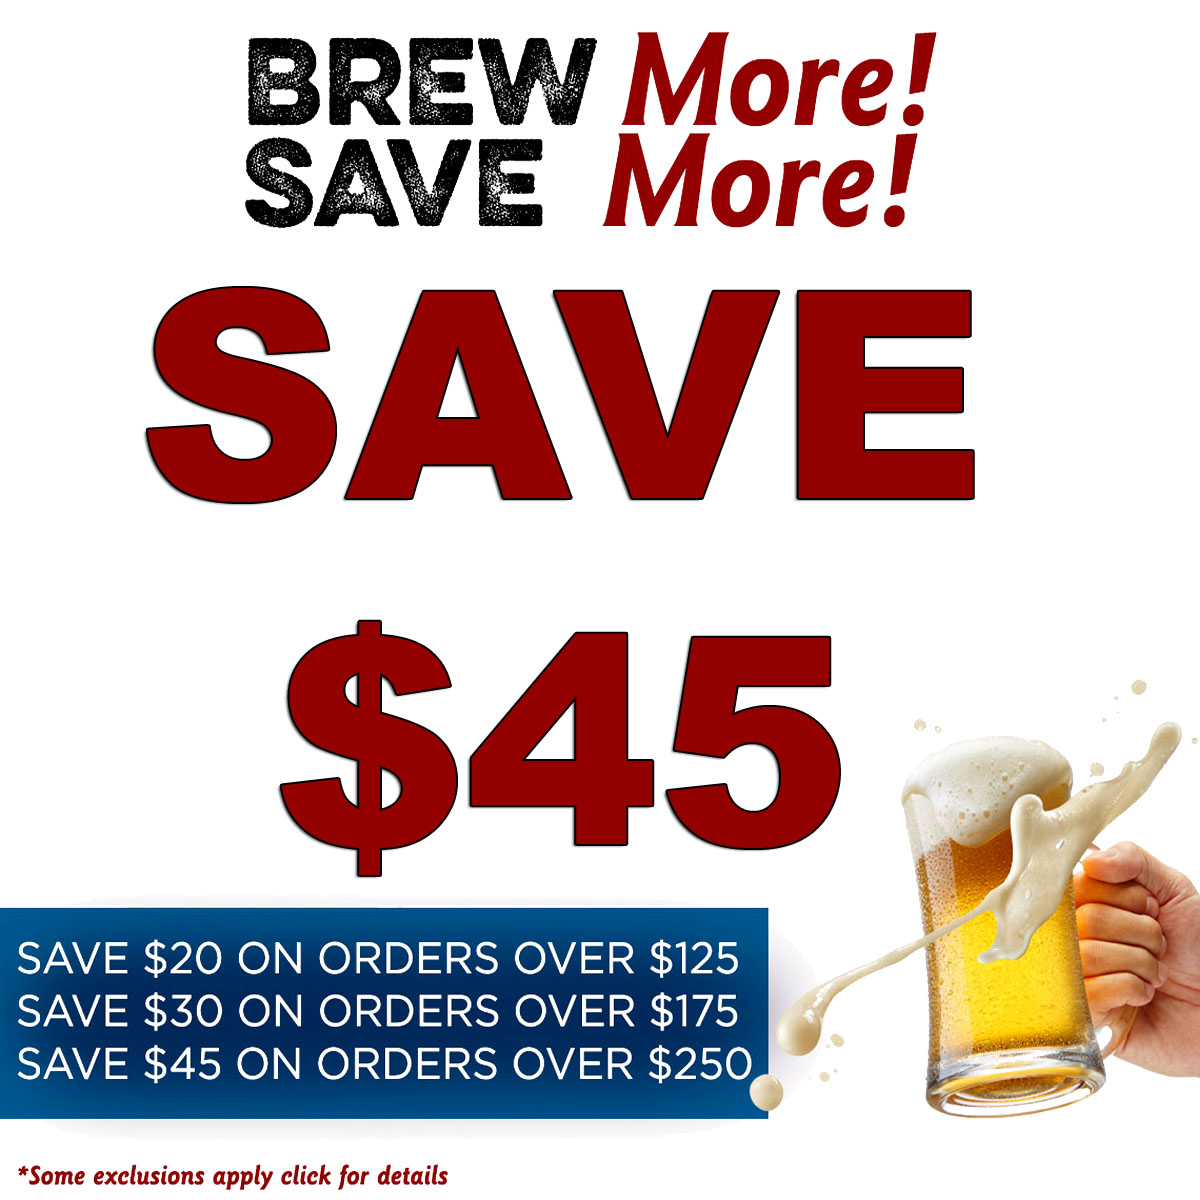 MoreBeer Save Up To $45 On Your More Beer Purchase With This MoreBeer.com Promo Code Coupon Code